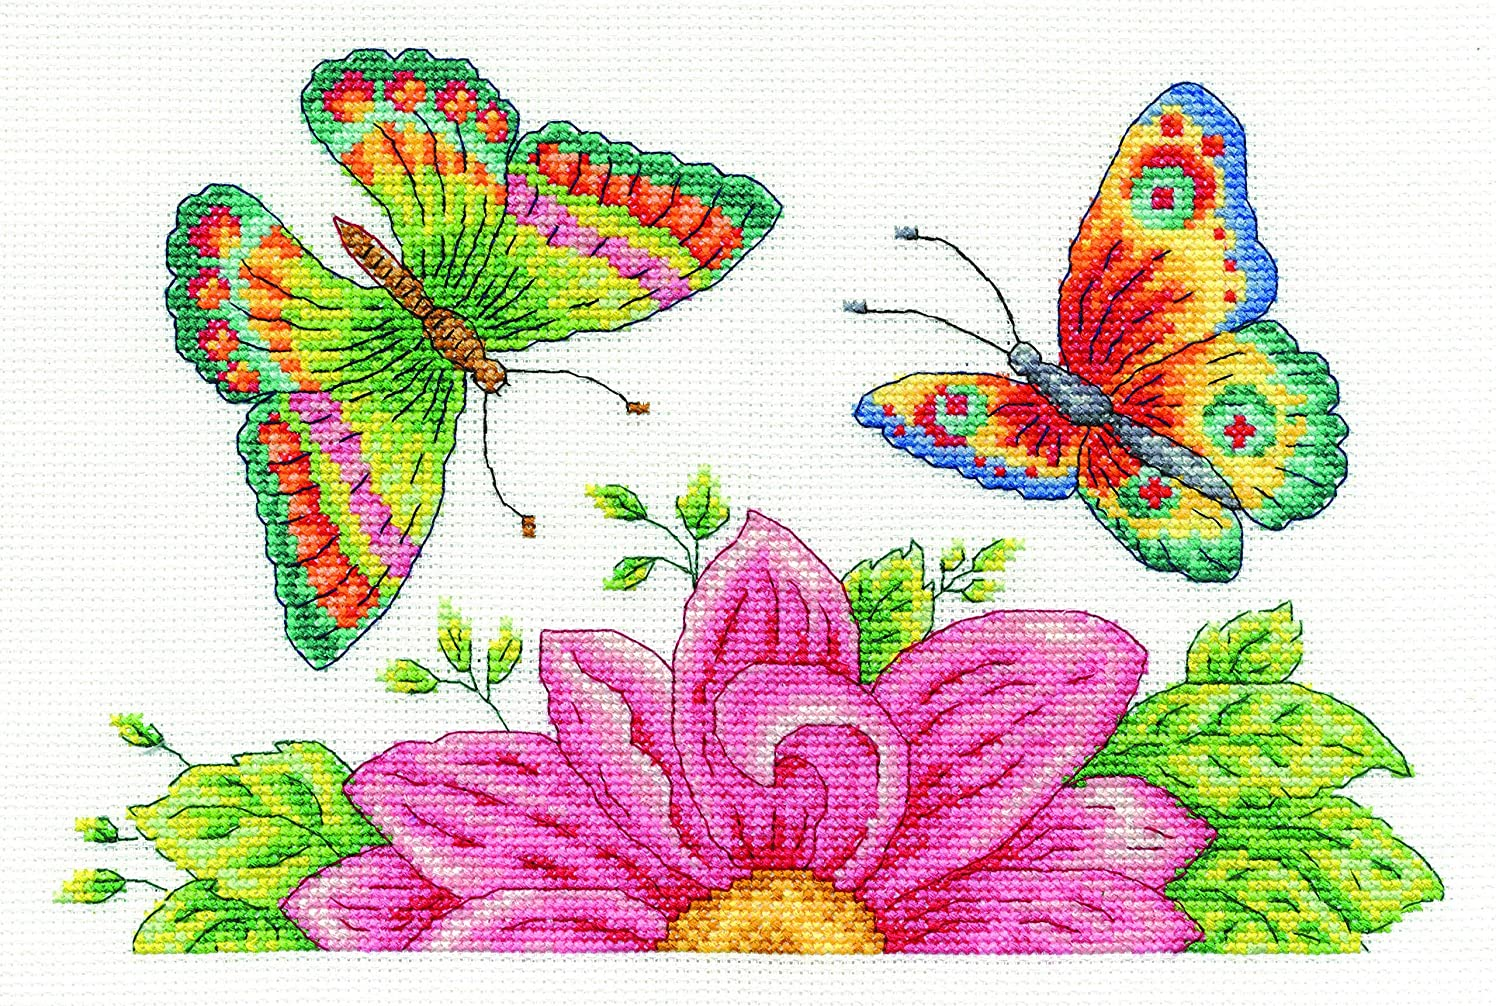 DMC BK1545 14 Count Butterfly Garden Counted Cross Stitch Kit, 10